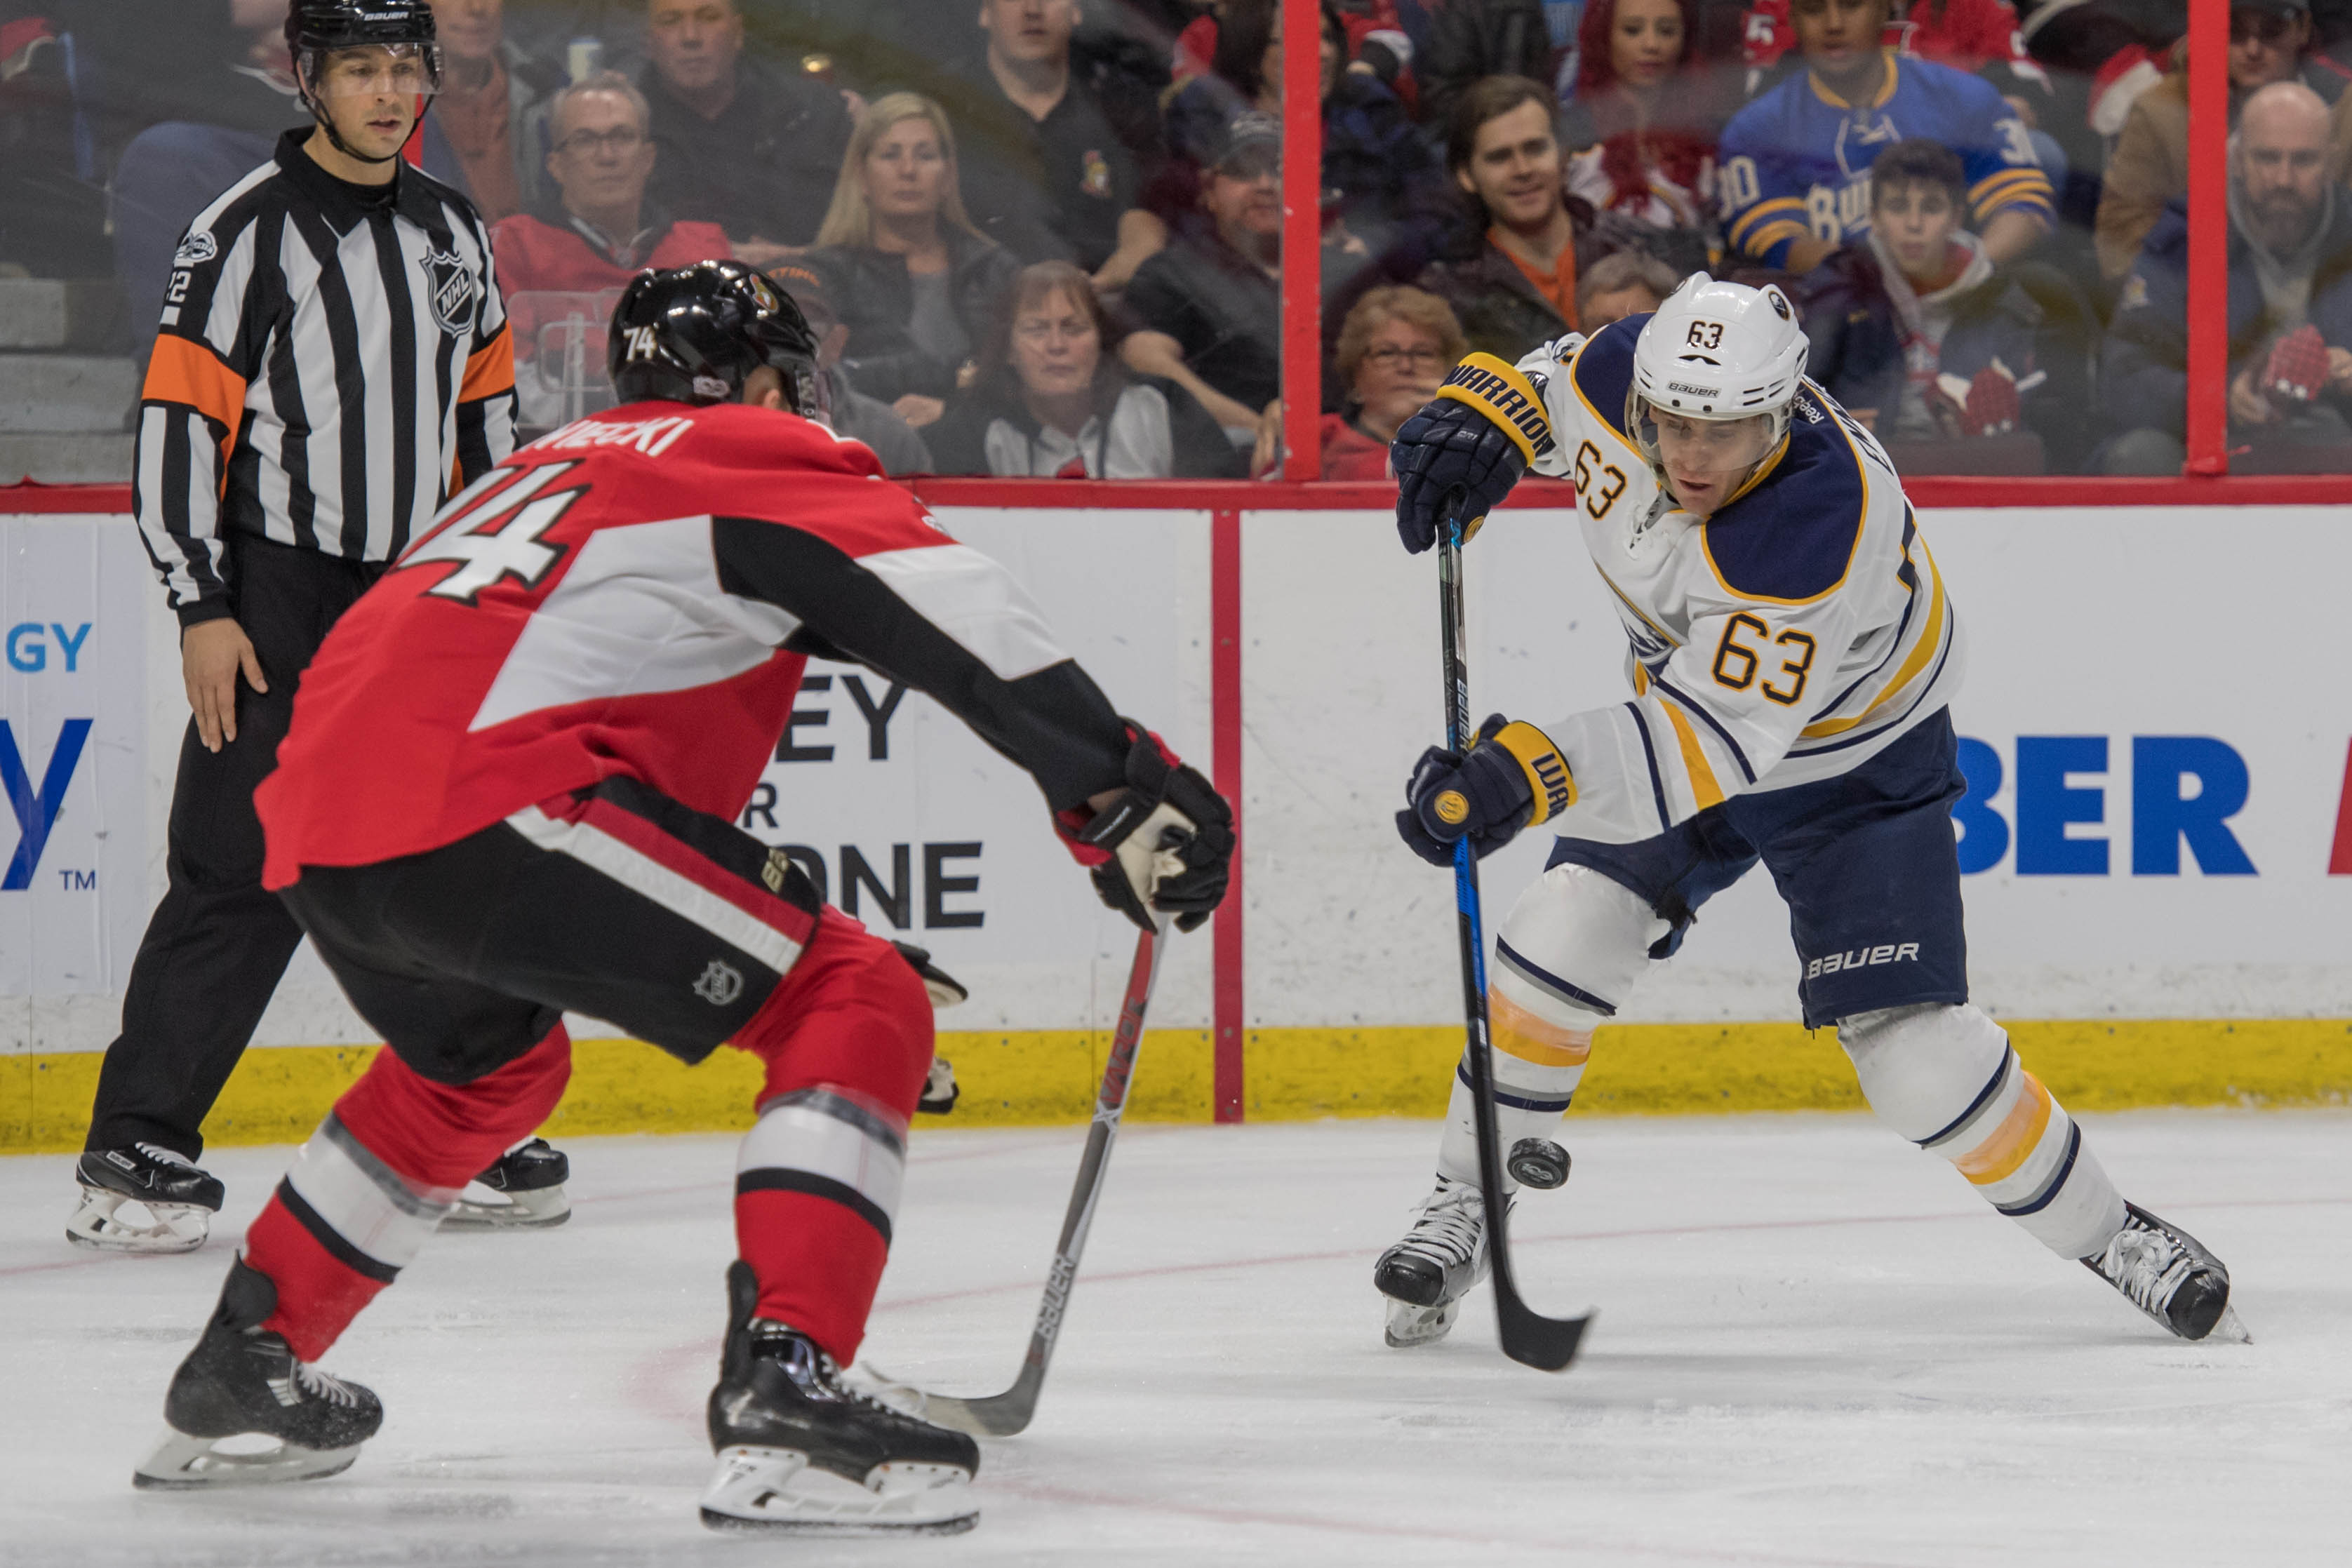 Sabres winger Tyler Ennis shoots past Ottawa defenseman Mark Borowiecki. (Marc DesRosiers-USA TODAY Sports).